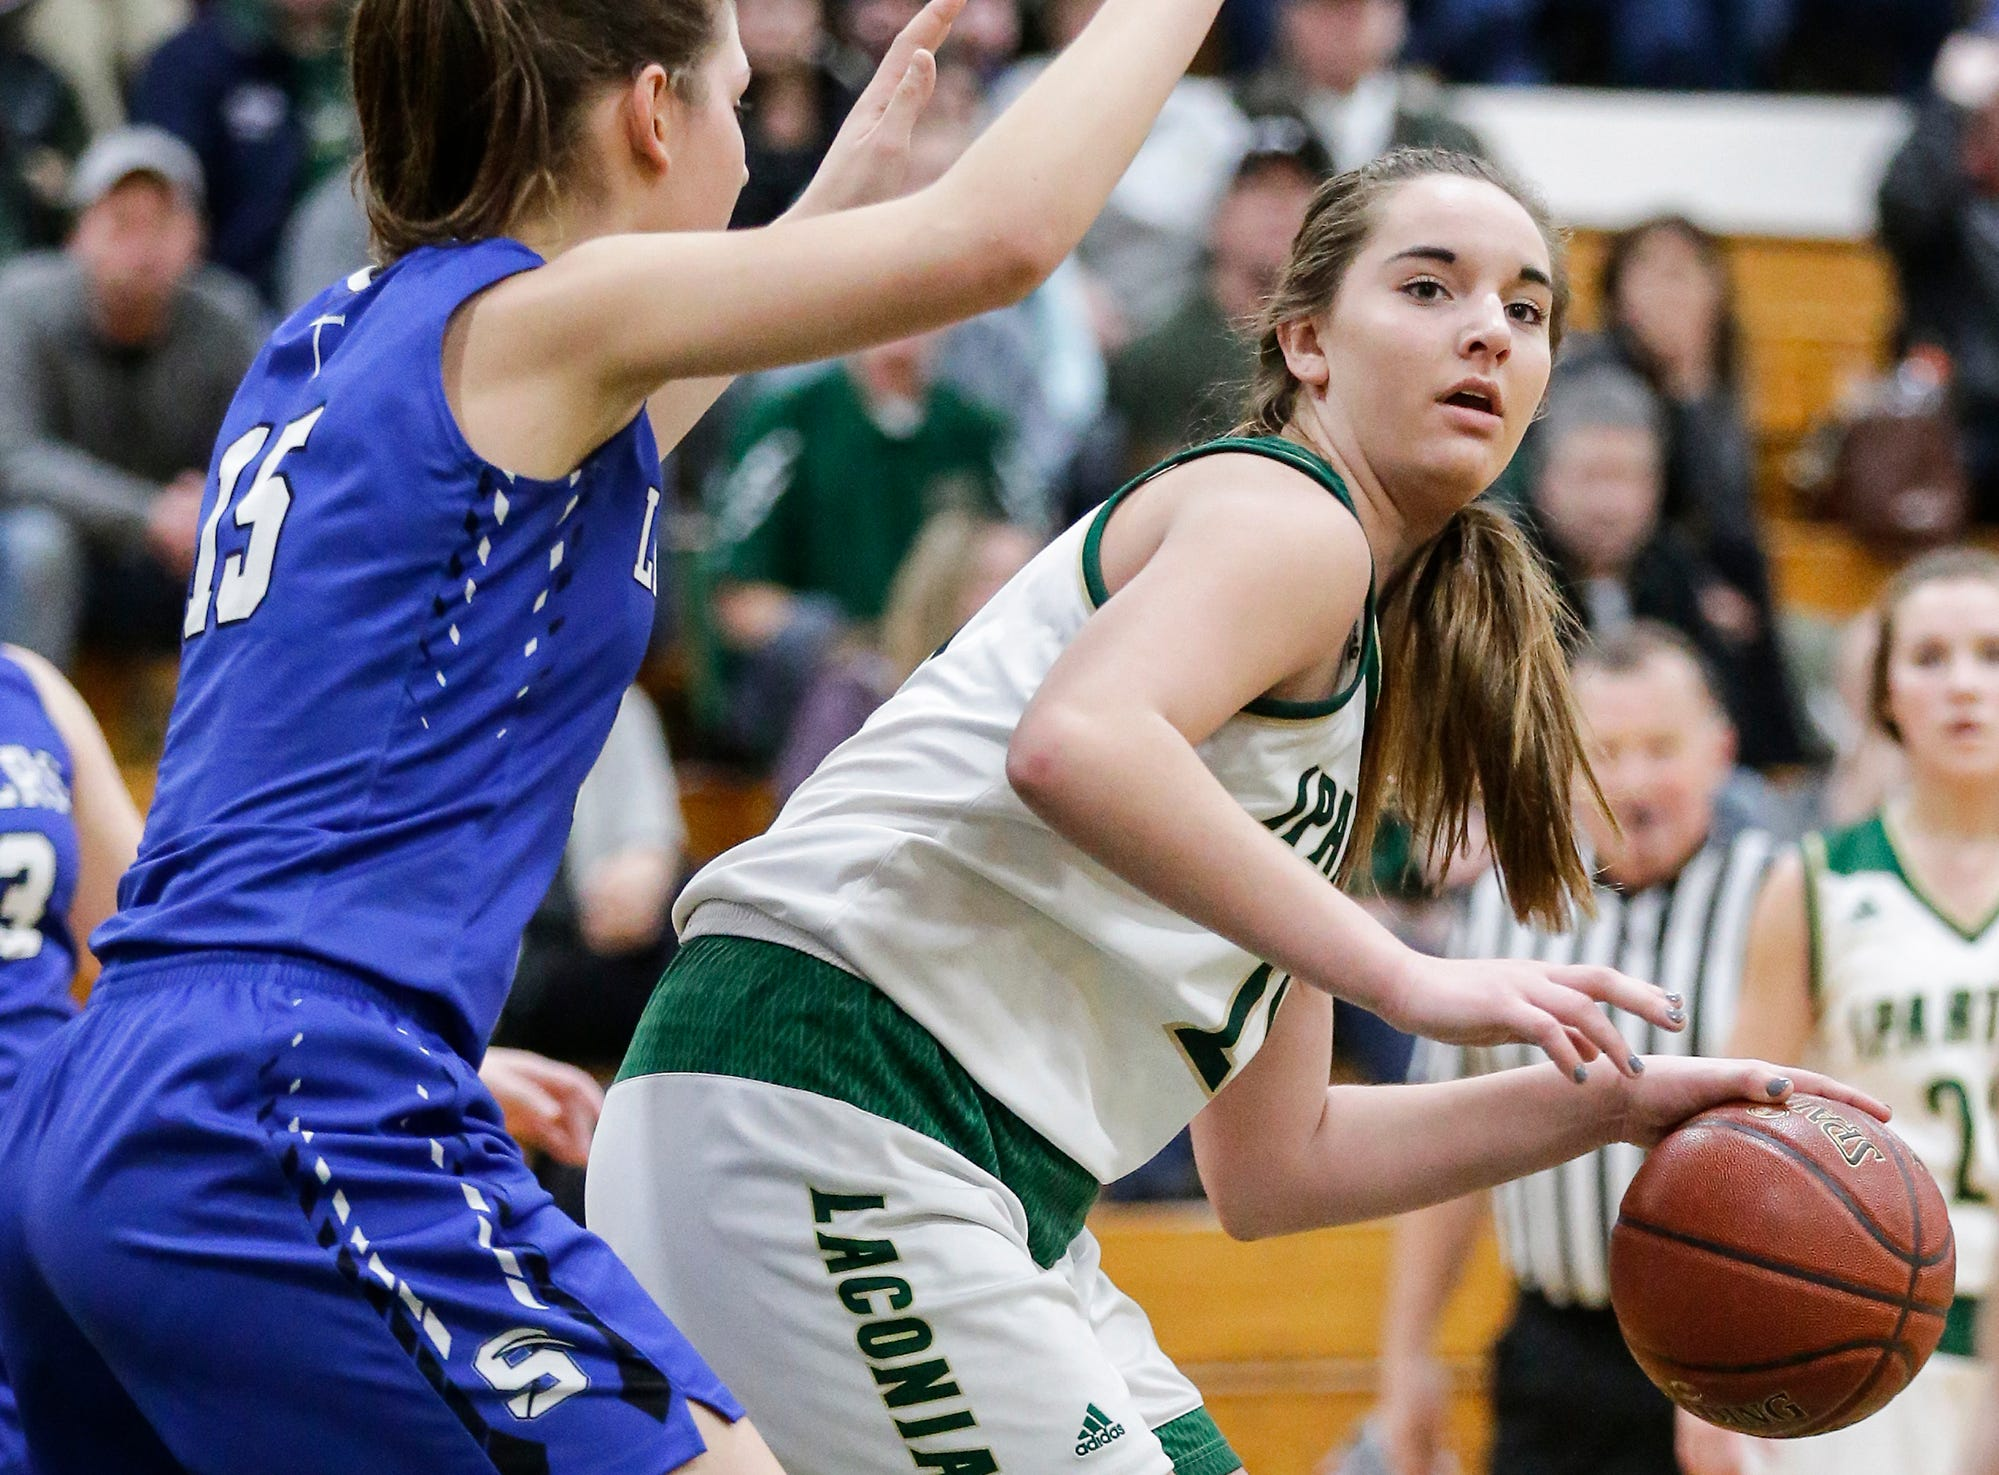 St. Mary's Springs Academy girls basketball's Maddie Gehring defends against Laconia High School's Alissa Dins Tuesday, January 15, 2019 during their game in Rosendale. Laconia won the game 57-45. Doug Raflik/USA TODAY NETWORK-Wisconsin